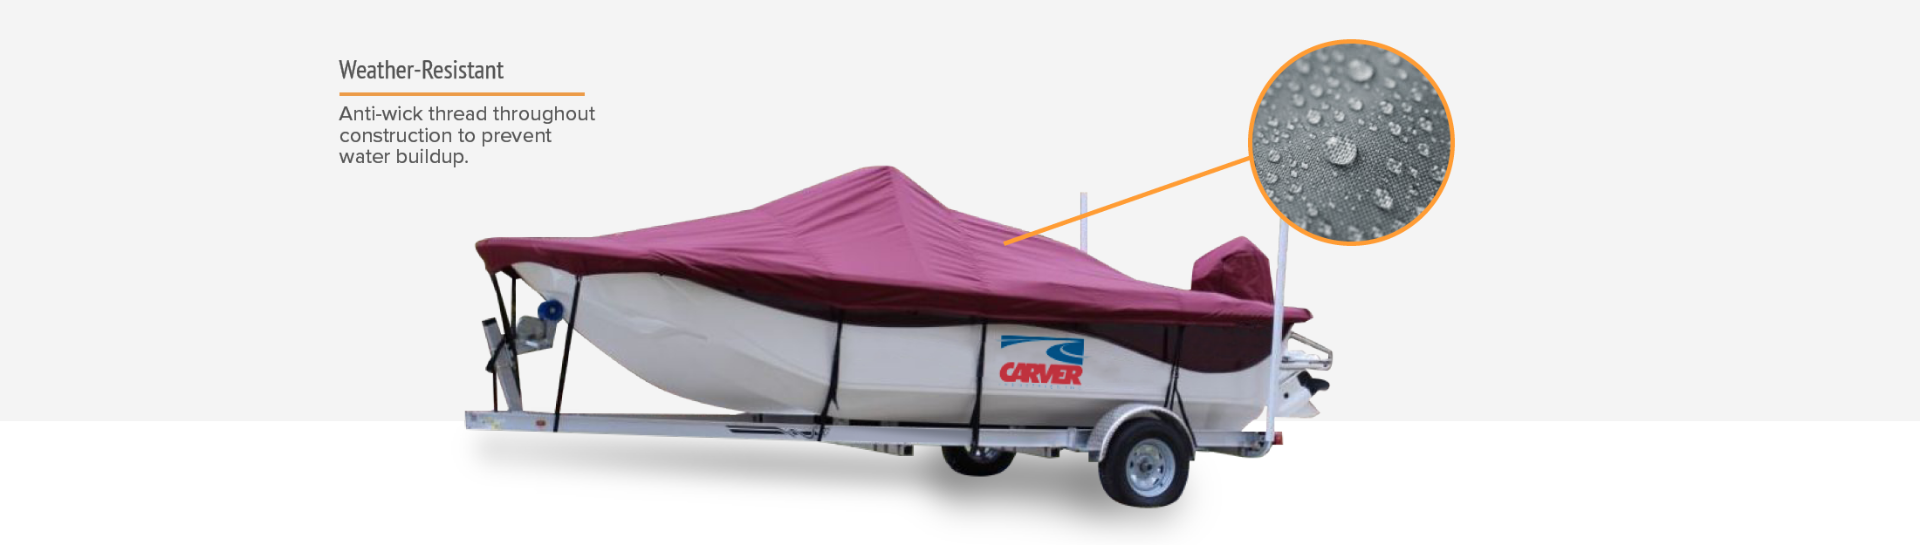 Carver boat cover weather resistant